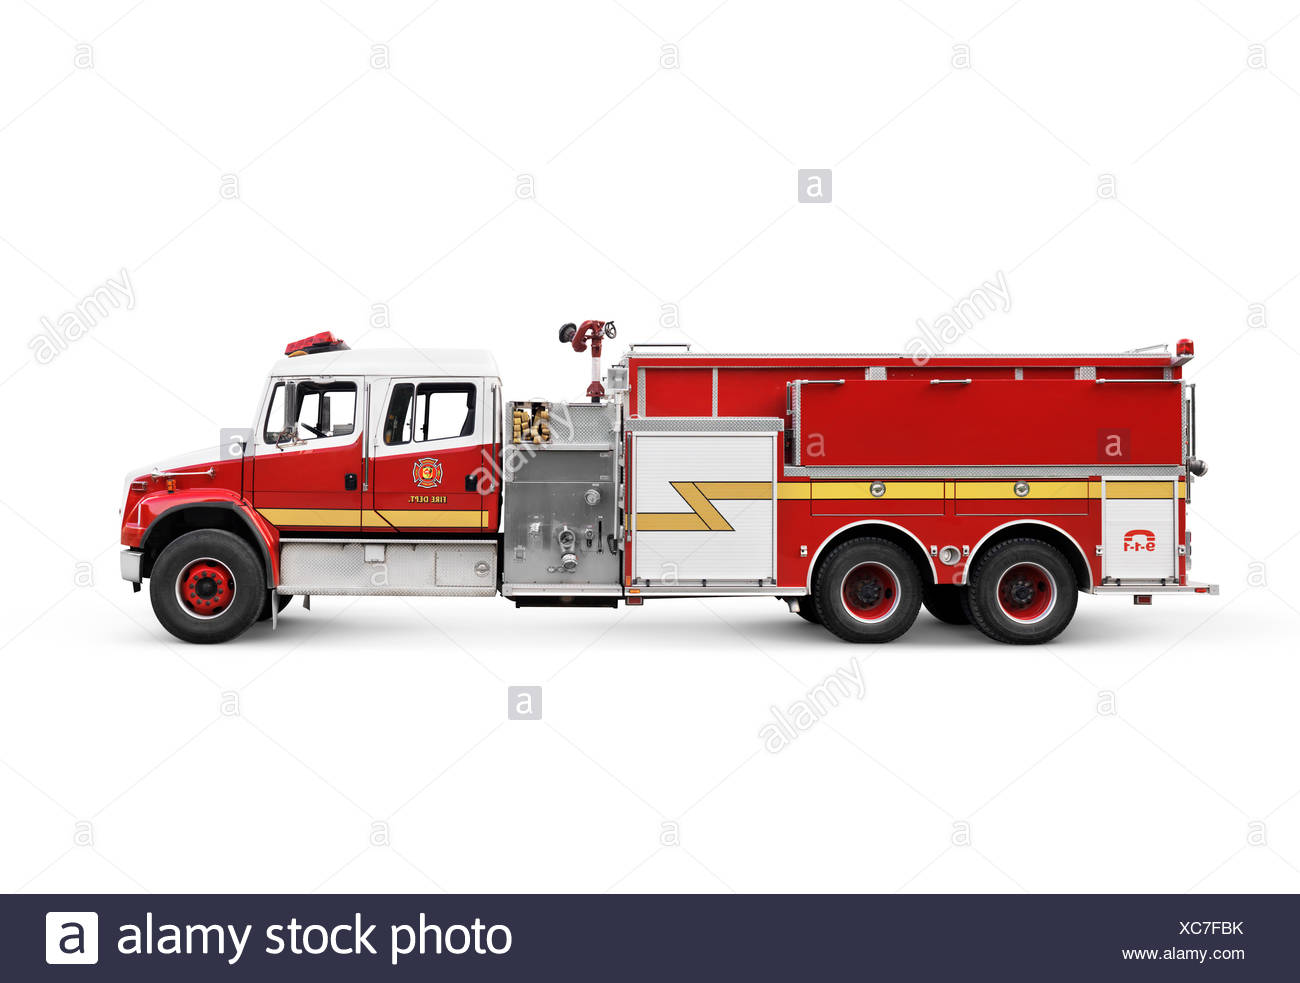 Fire truck pumper, conventional fire engine side view isolated on white background with clipping path - Stock Image